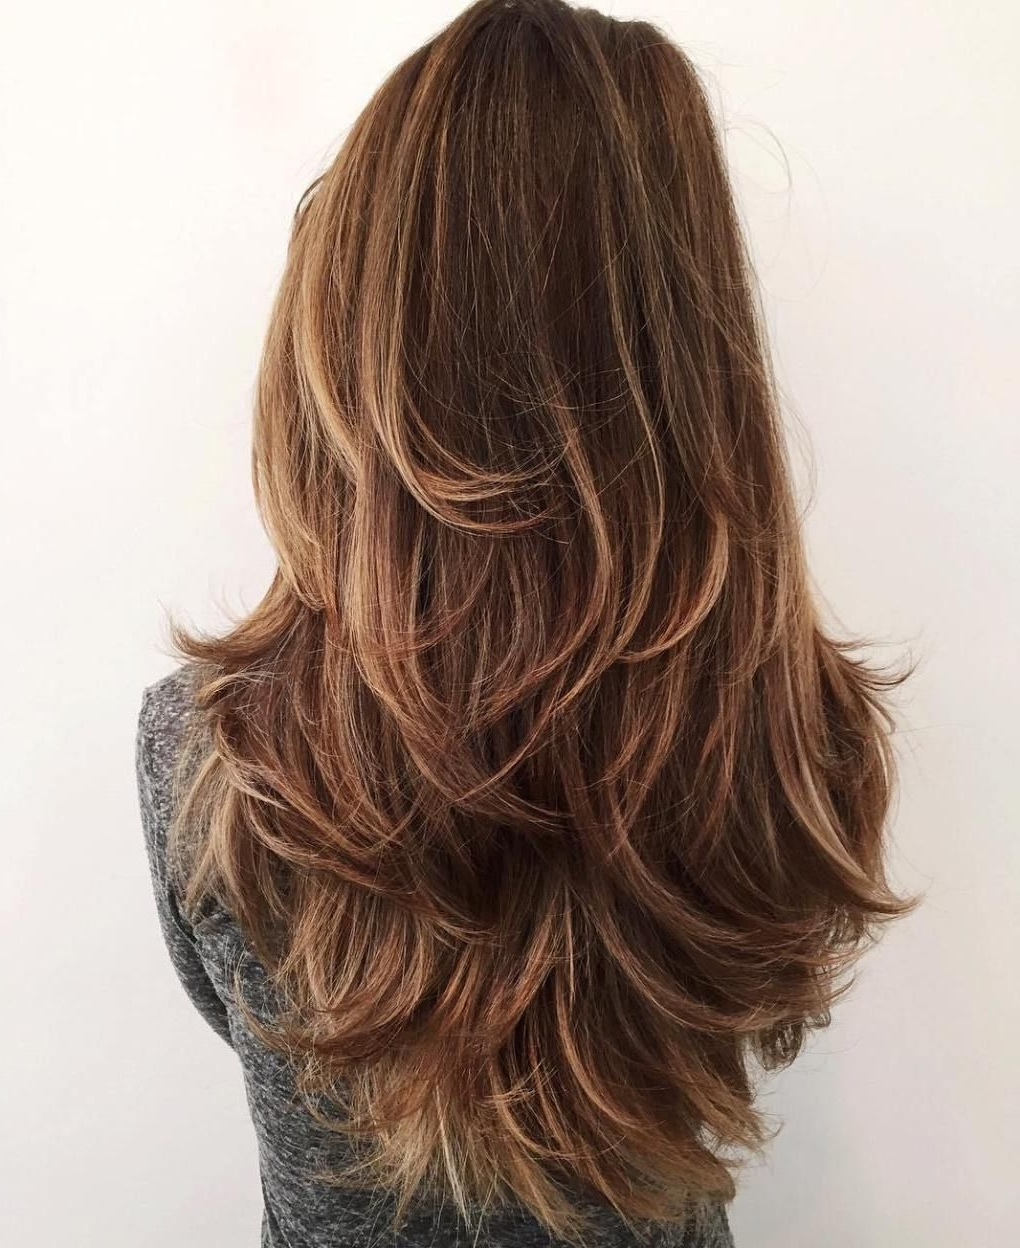 Most Current Shaggy Layered Hairstyles For Long Hair For 50 Lovely Long Shag Haircuts For Effortless Stylish Looks (View 5 of 15)